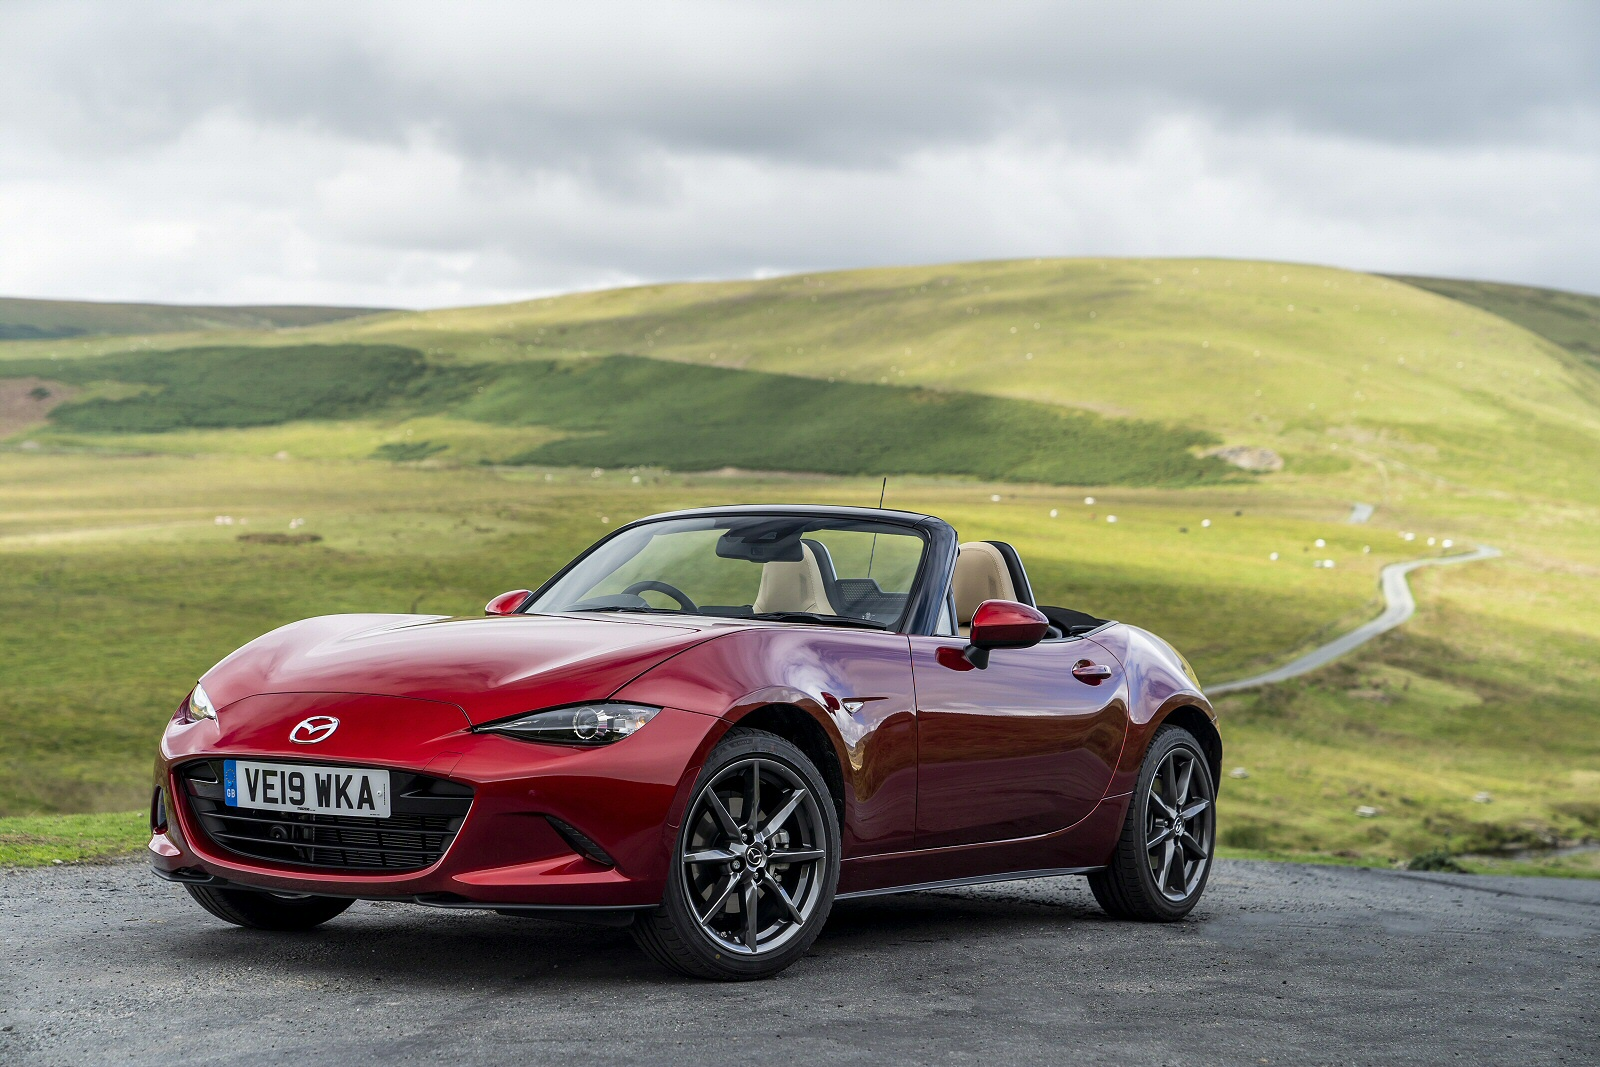 Mazda Mx5 For Sale >> New Mazda Mx 5 1 5 132 Se 2dr Petrol Convertible For Sale